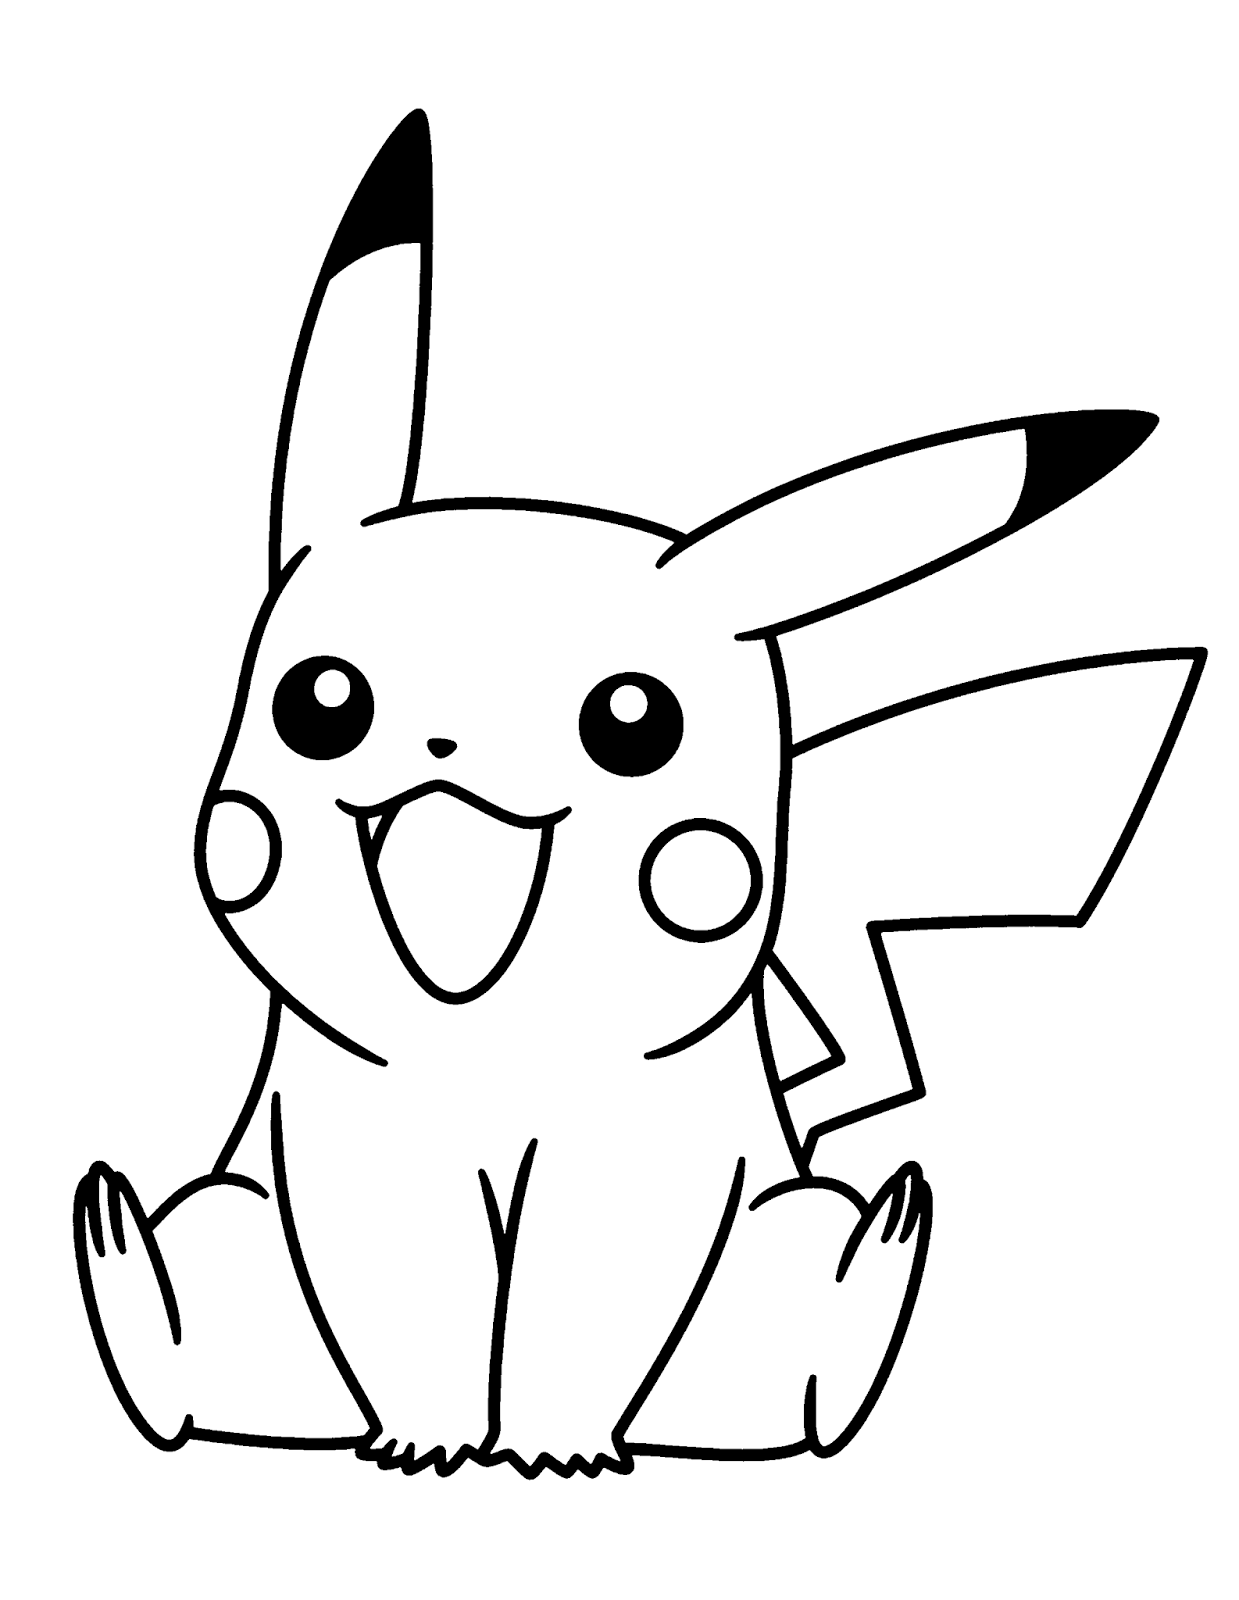 pokemon colouring pages online free pokemon swampert coloring pages download and print for free online colouring free pages pokemon